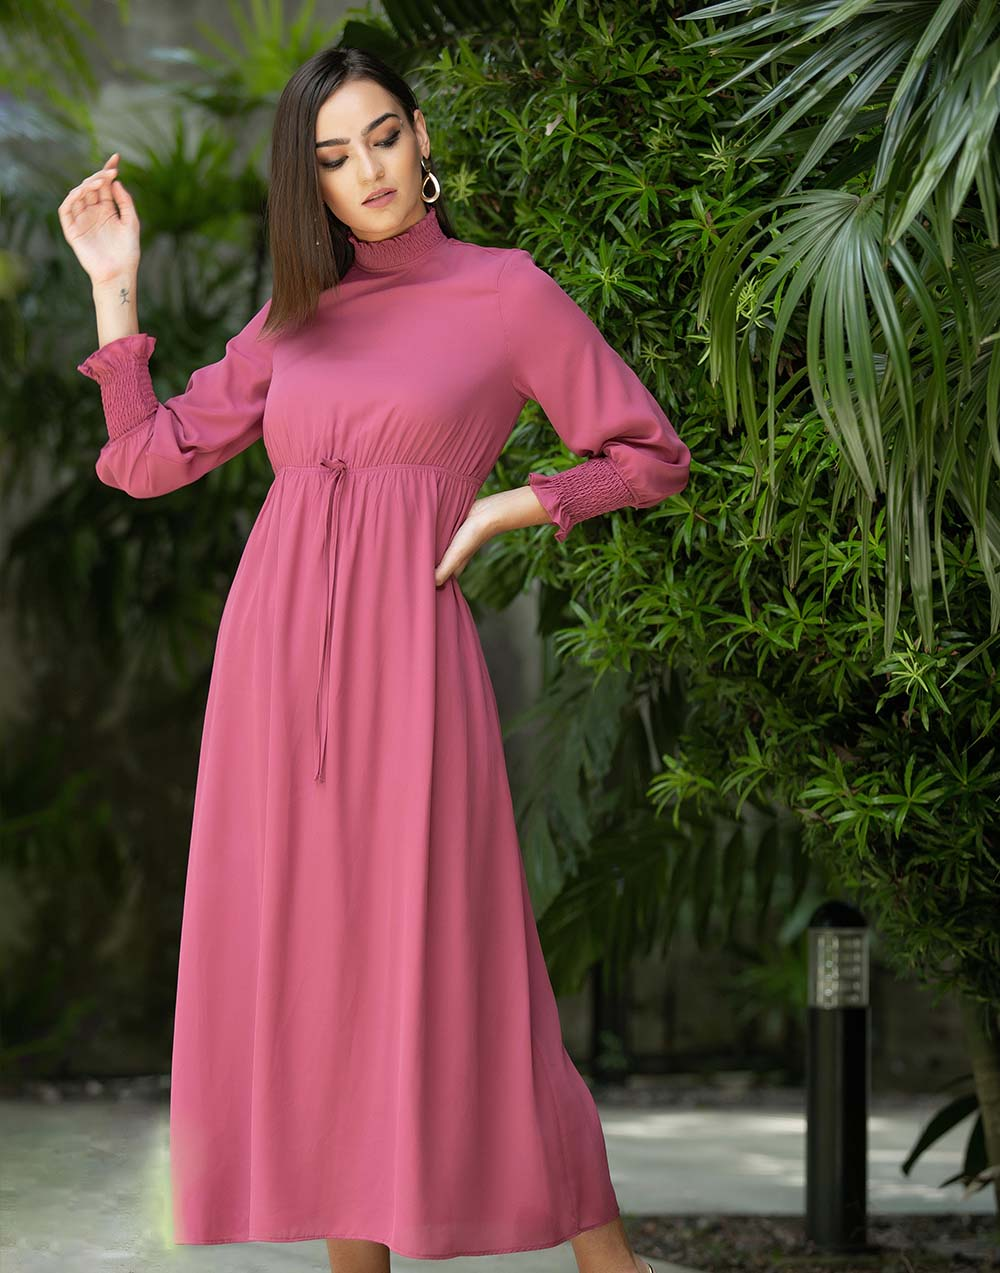 Vouge In You Maxi Dress